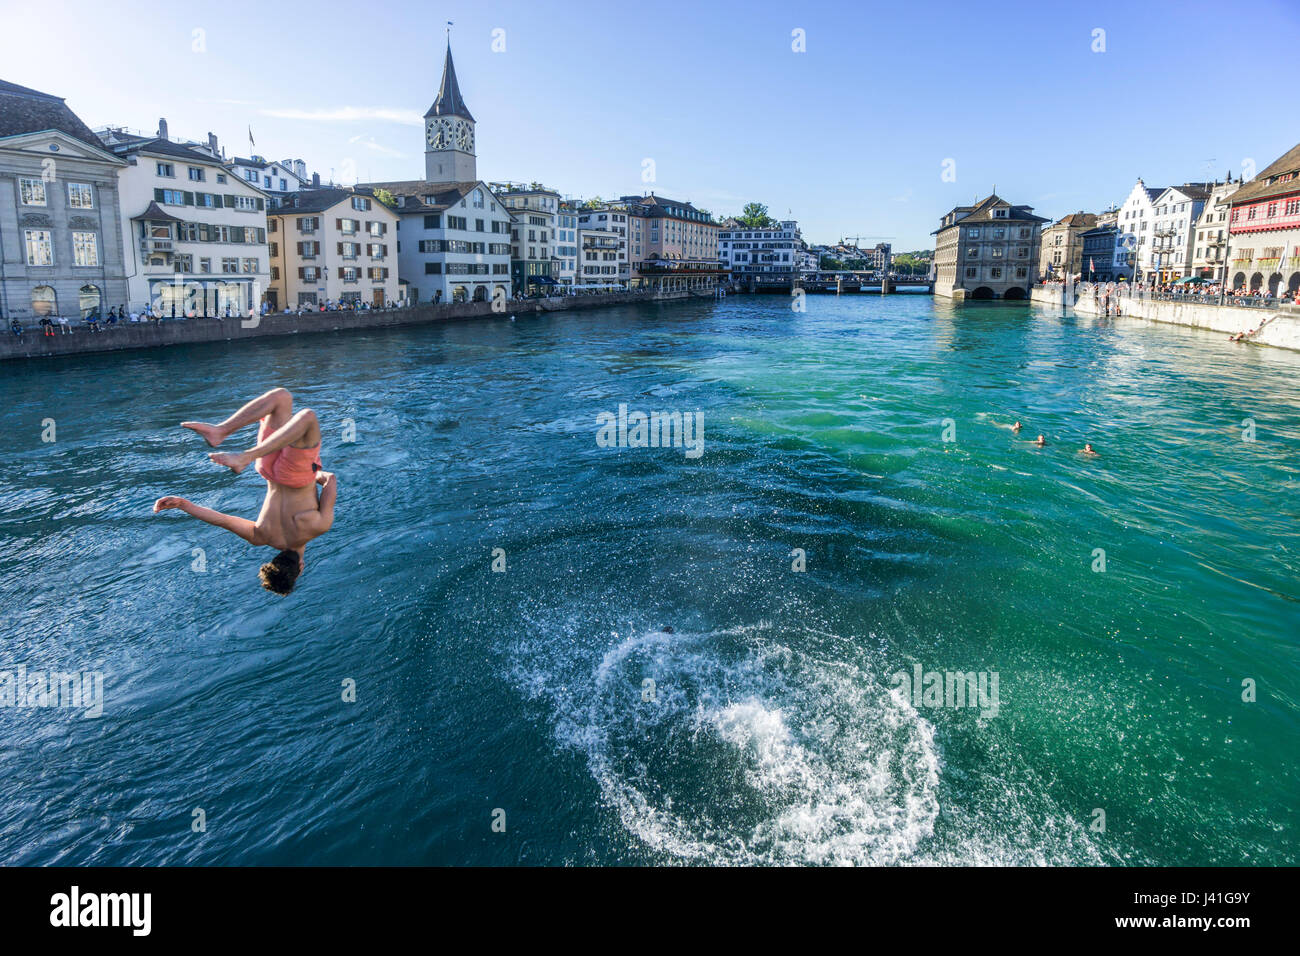 Young man jumping from Munster bridge into  river Limmat, Zurich, Switzerland - Stock Image